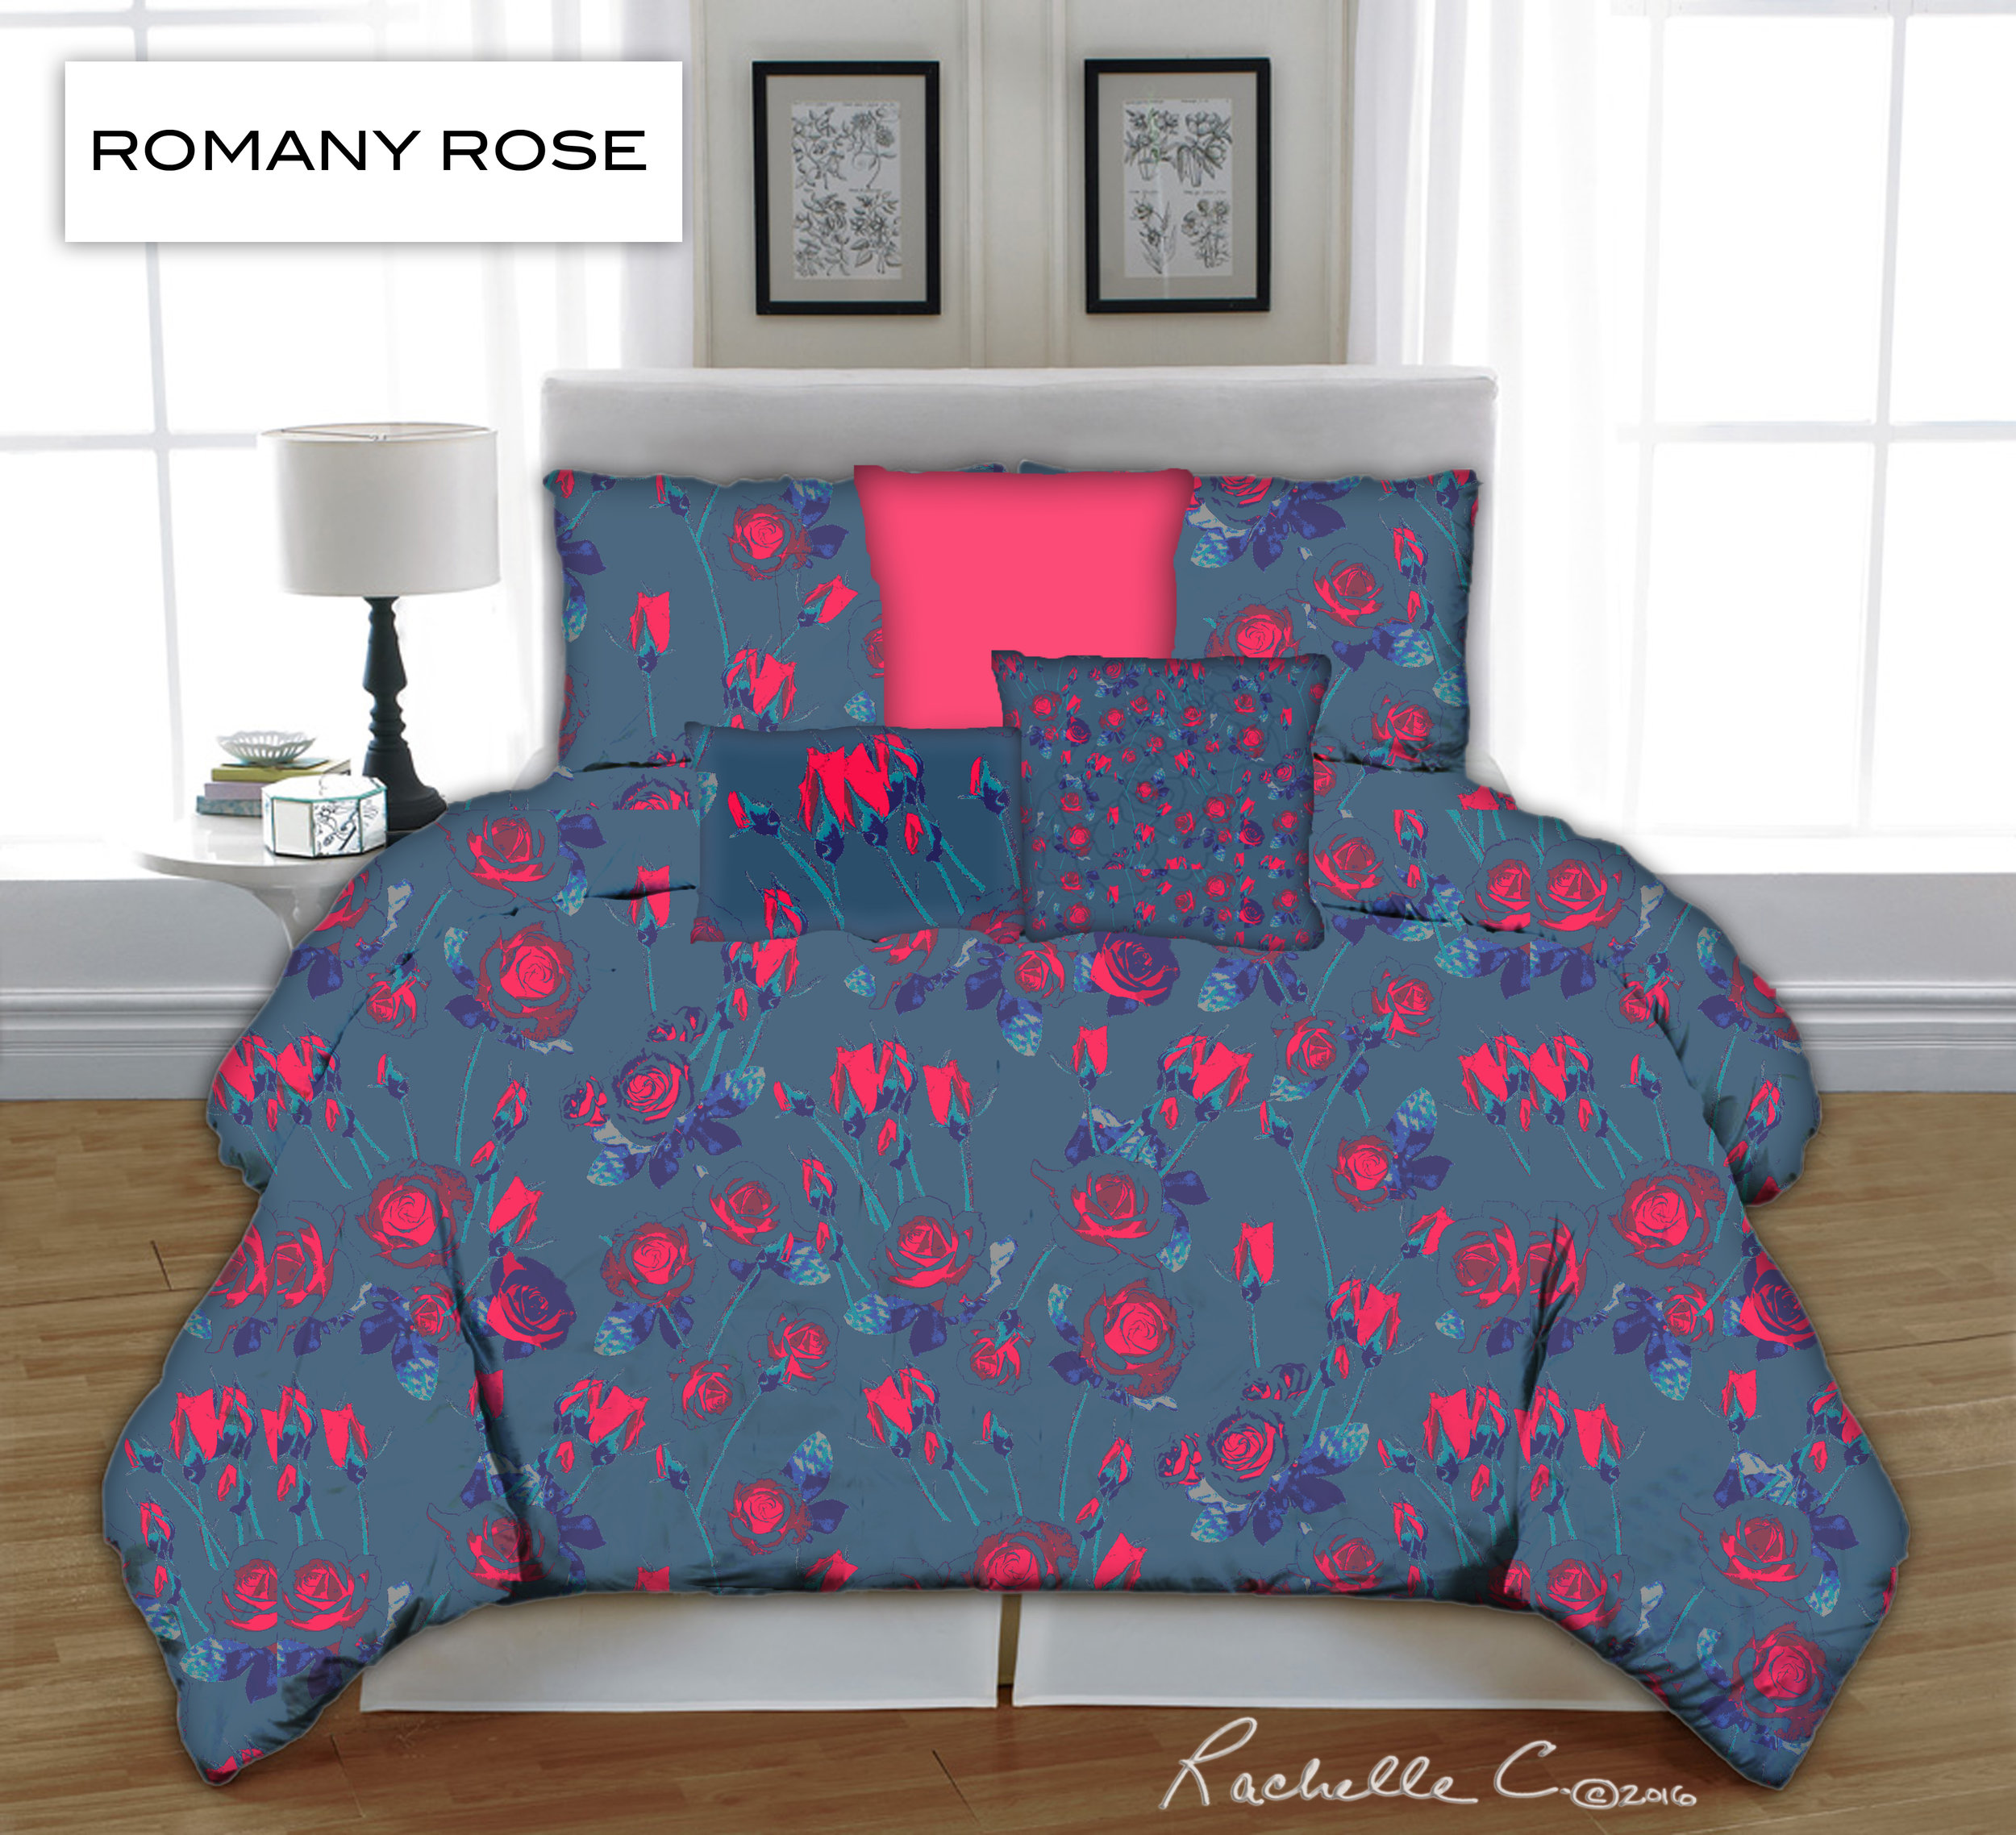 ROMANY-ROSE_bedding.jpg